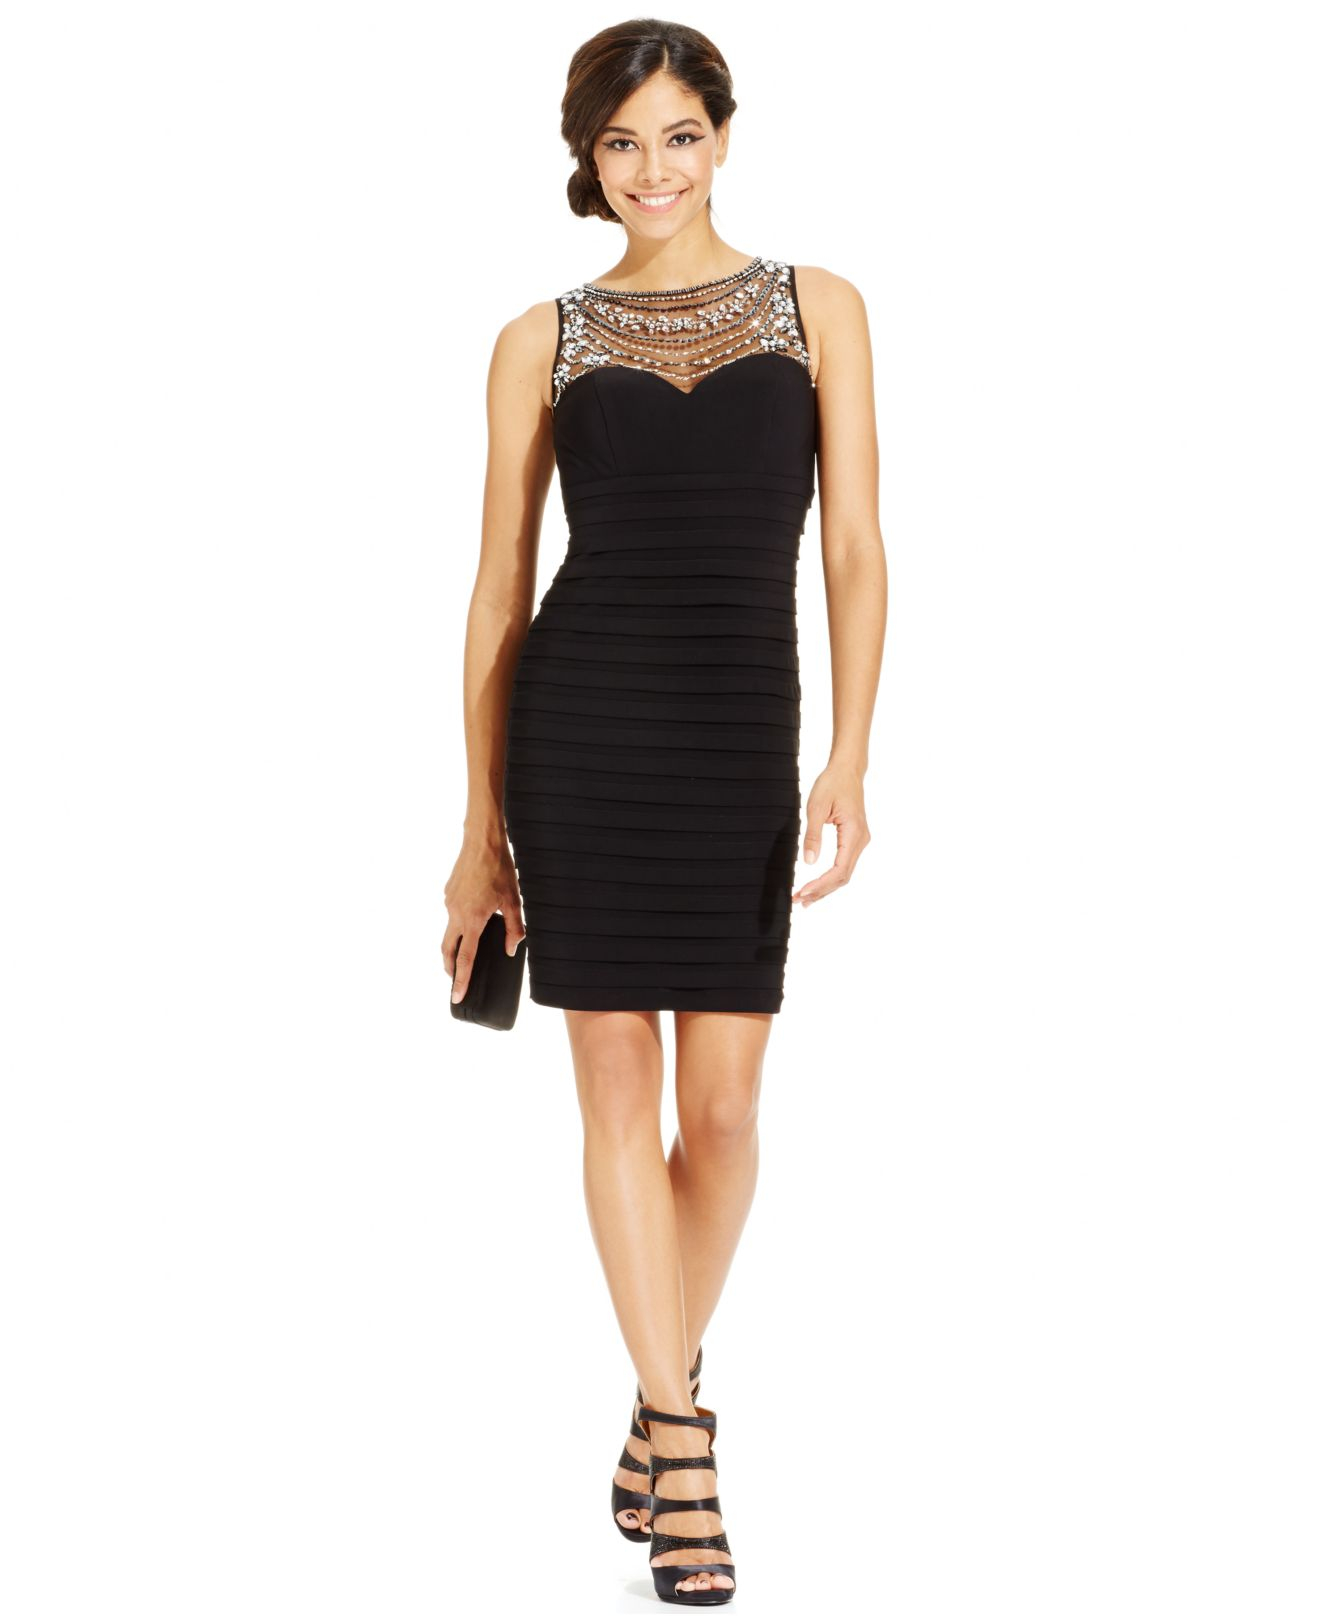 Black Illusion Dress: Patra Bodycon Dress With Beaded Illusion Neckline In Black